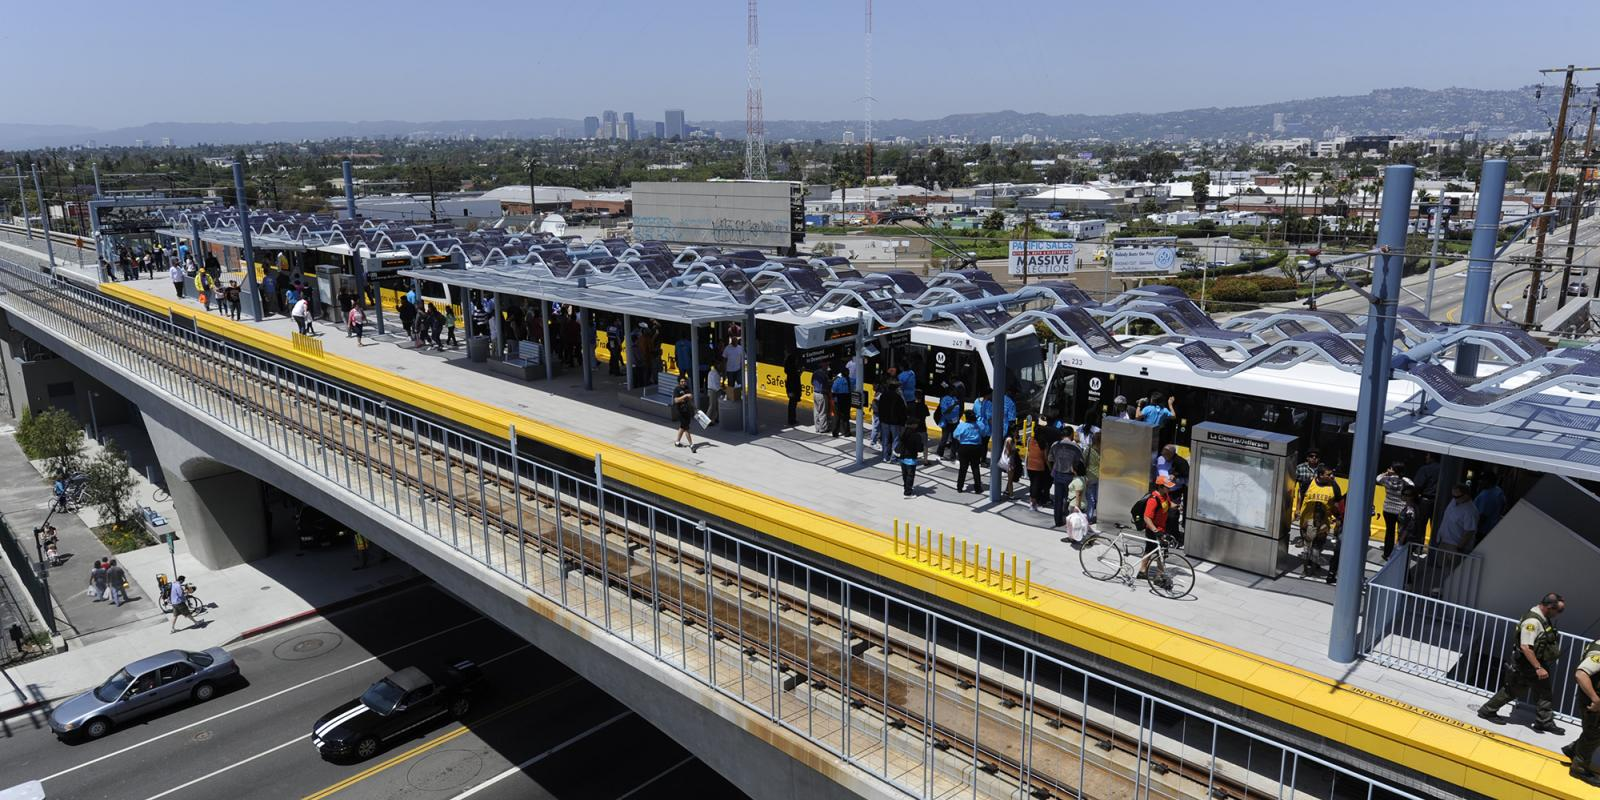 Expo Line, a light-rail line running between downtown Los Angeles and Santa Monica